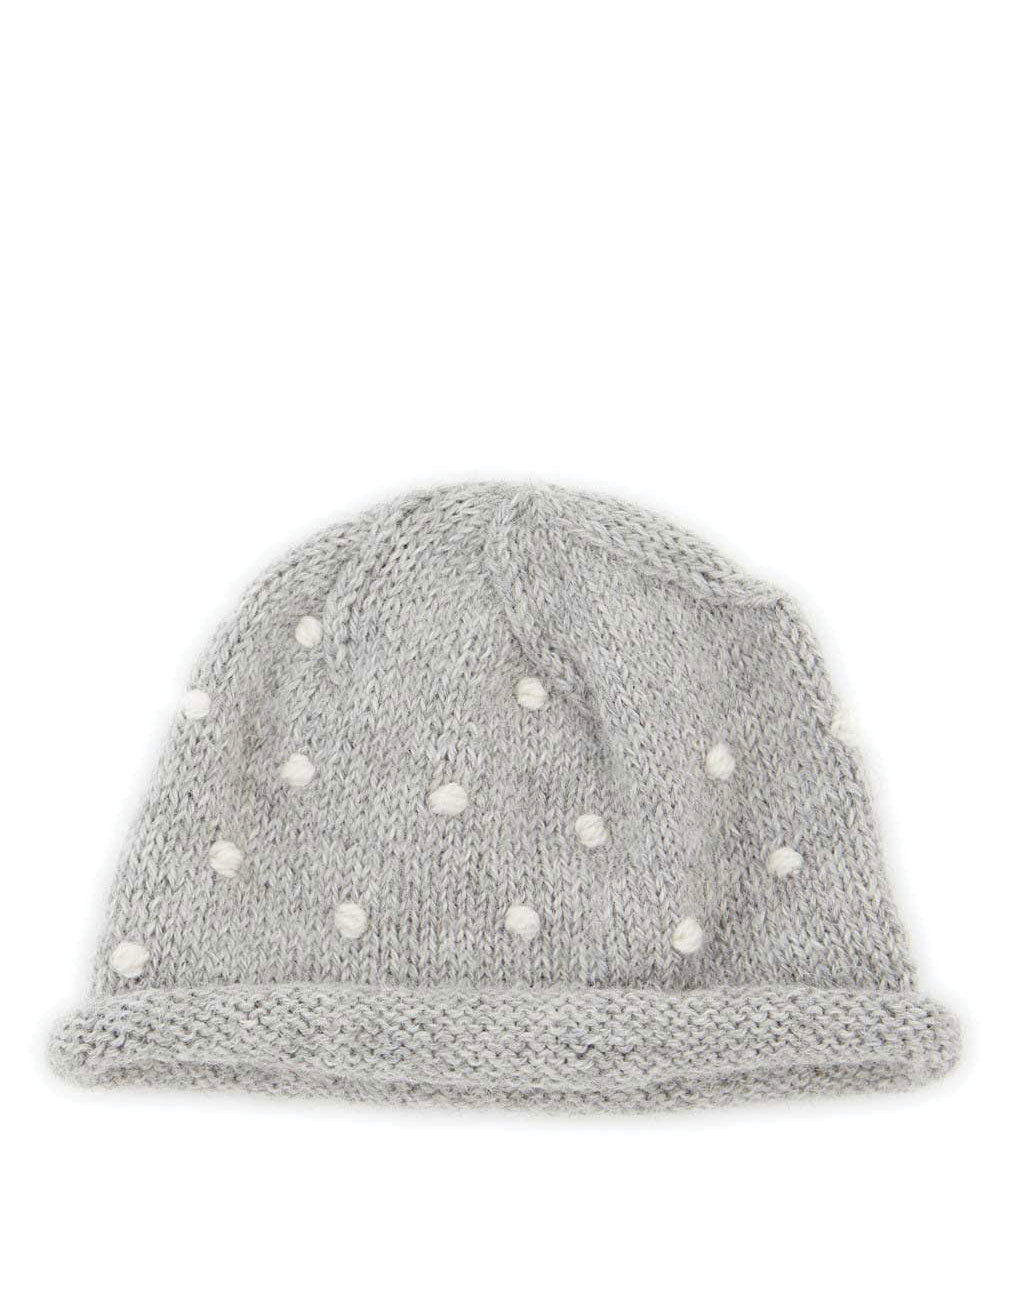 Fair Trade Natural Peruvian Alpaca Wool Hand-Knit Baby Beanie- Gray Polka Dot